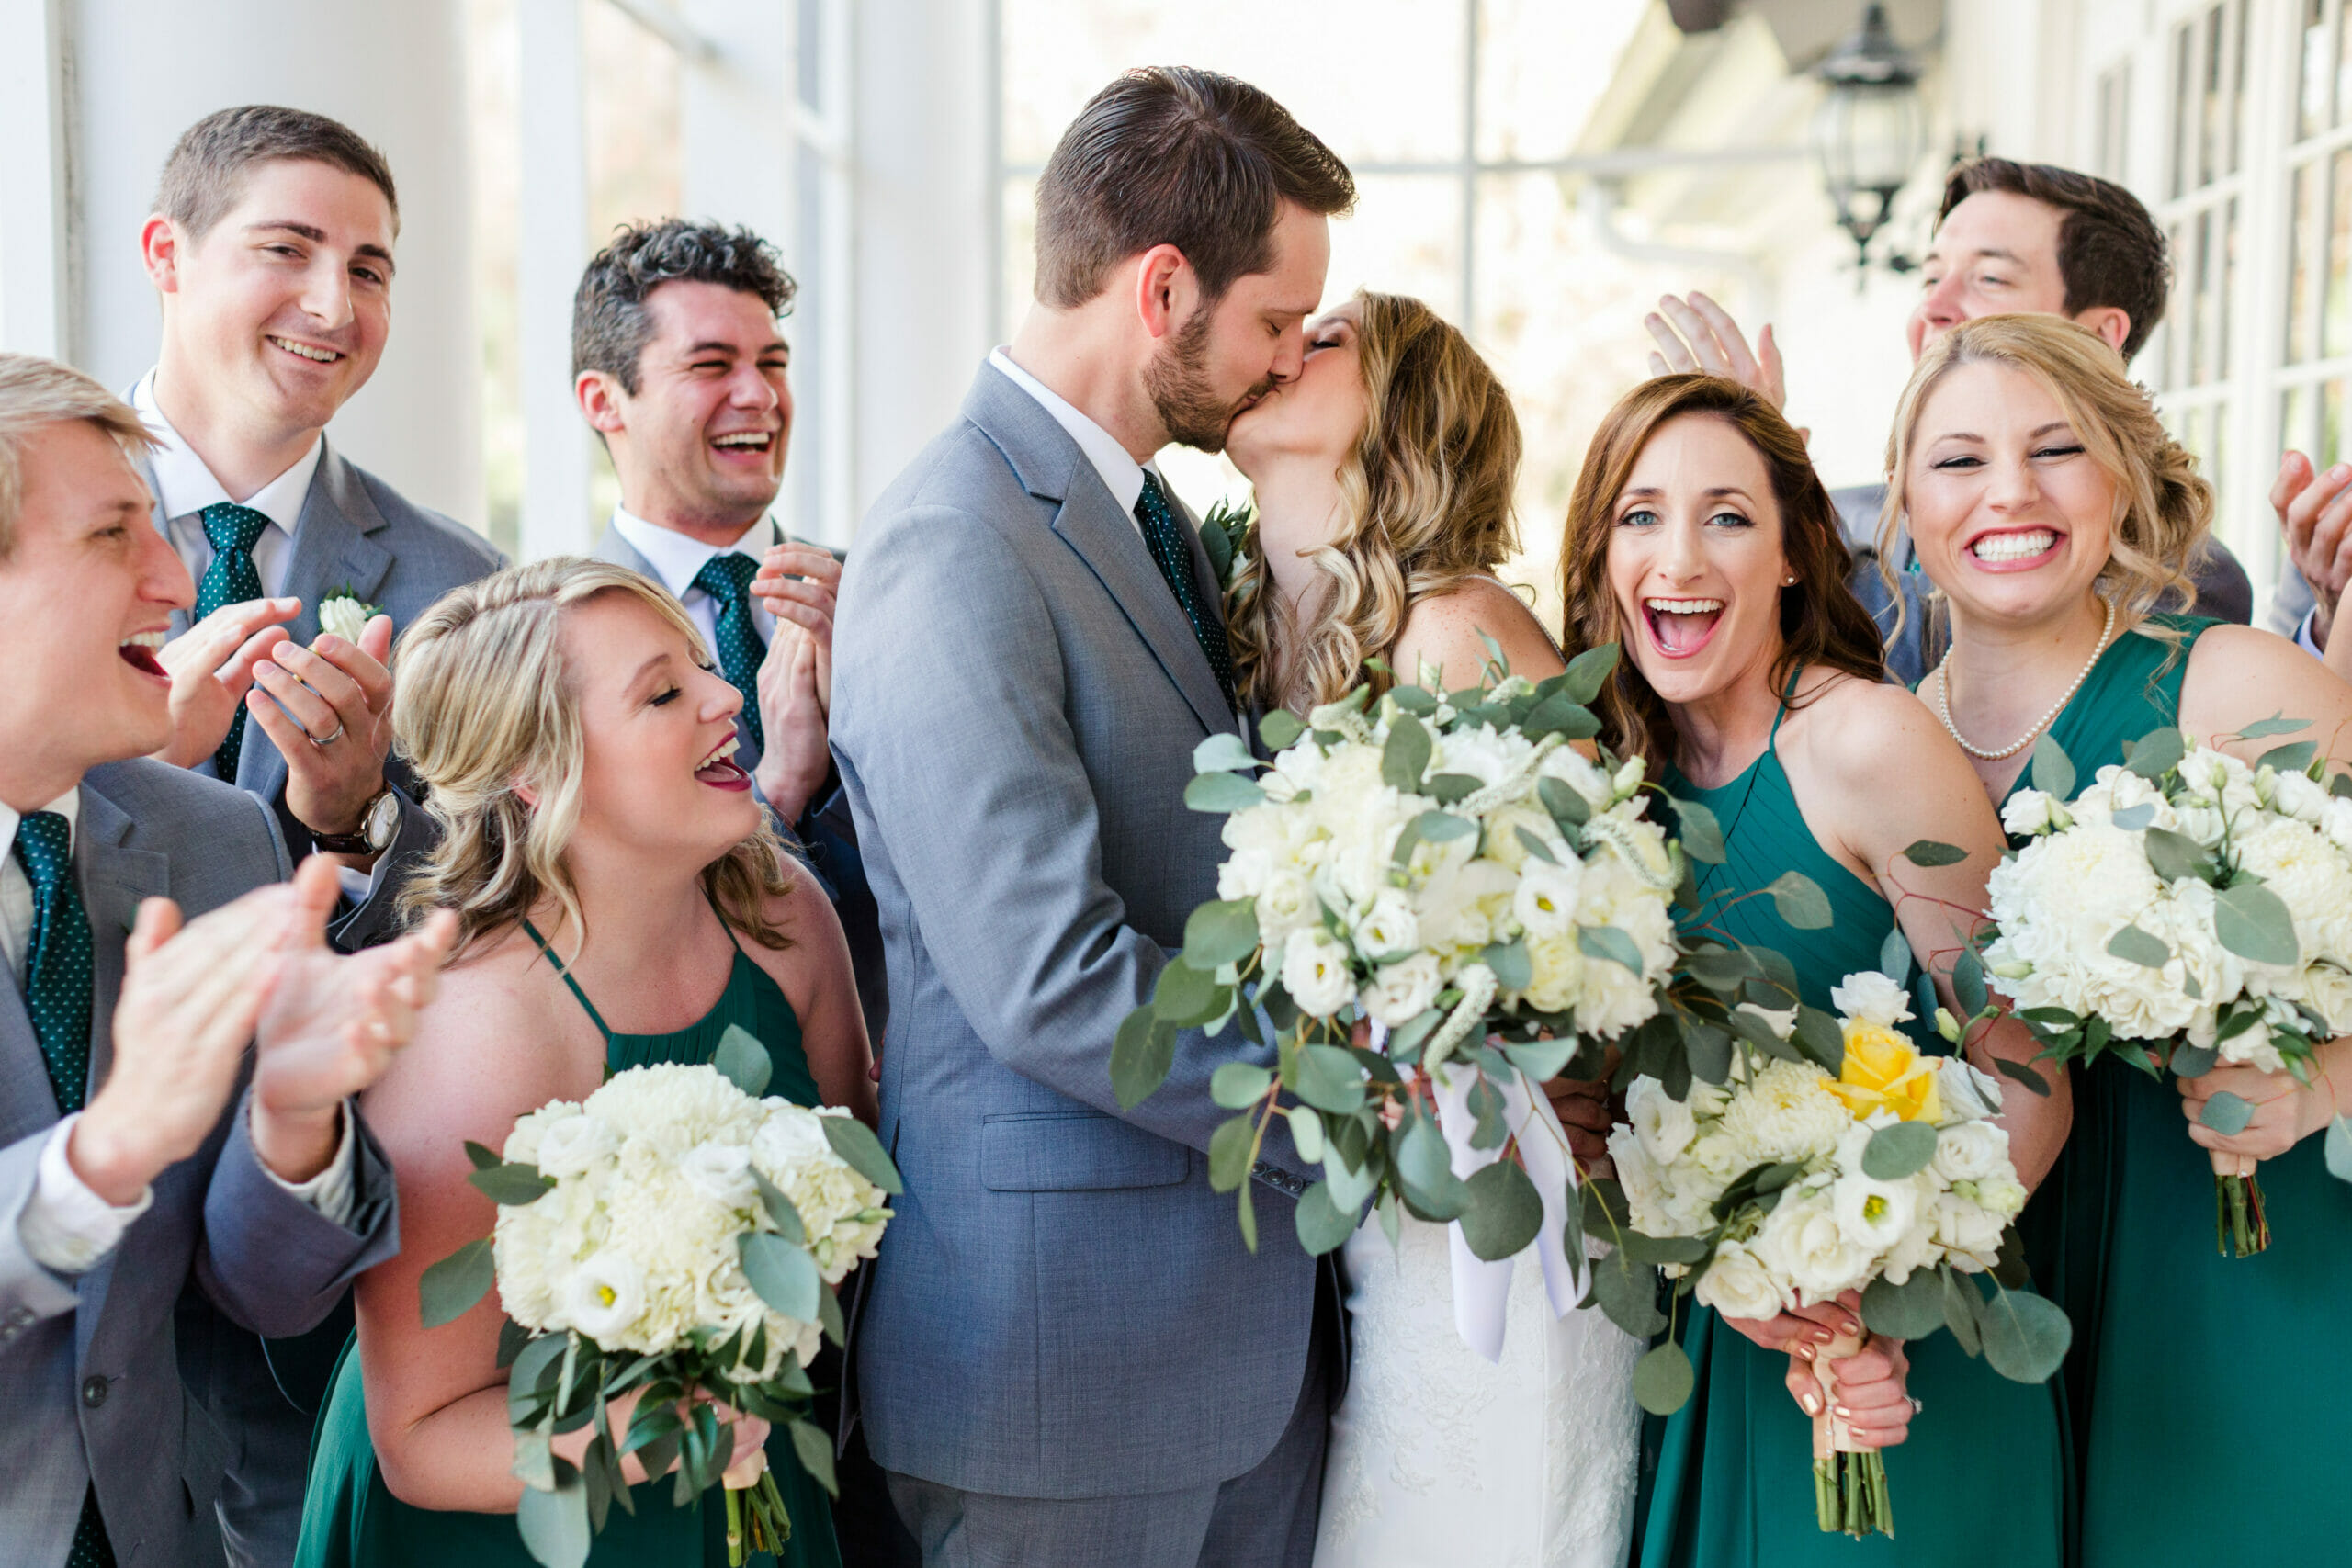 Bridal Party Celebrating the Bride and Groom